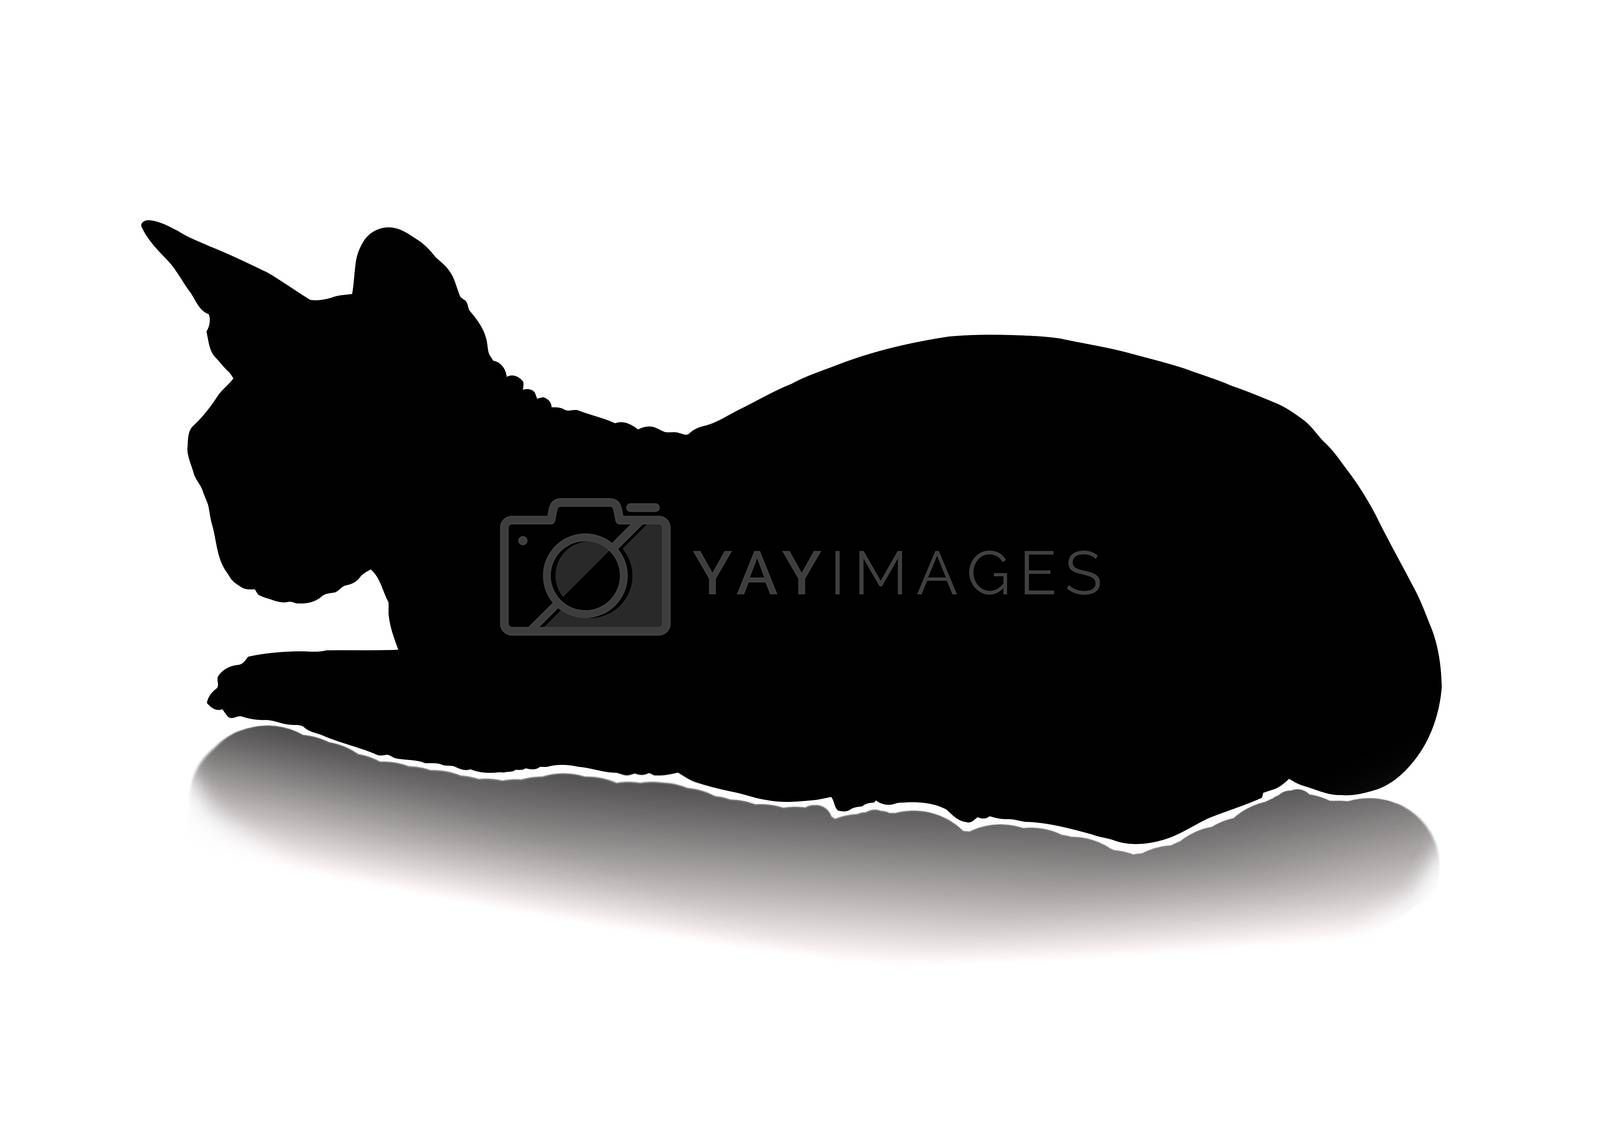 Royalty free image of cat silhouette by zhannaprokopeva